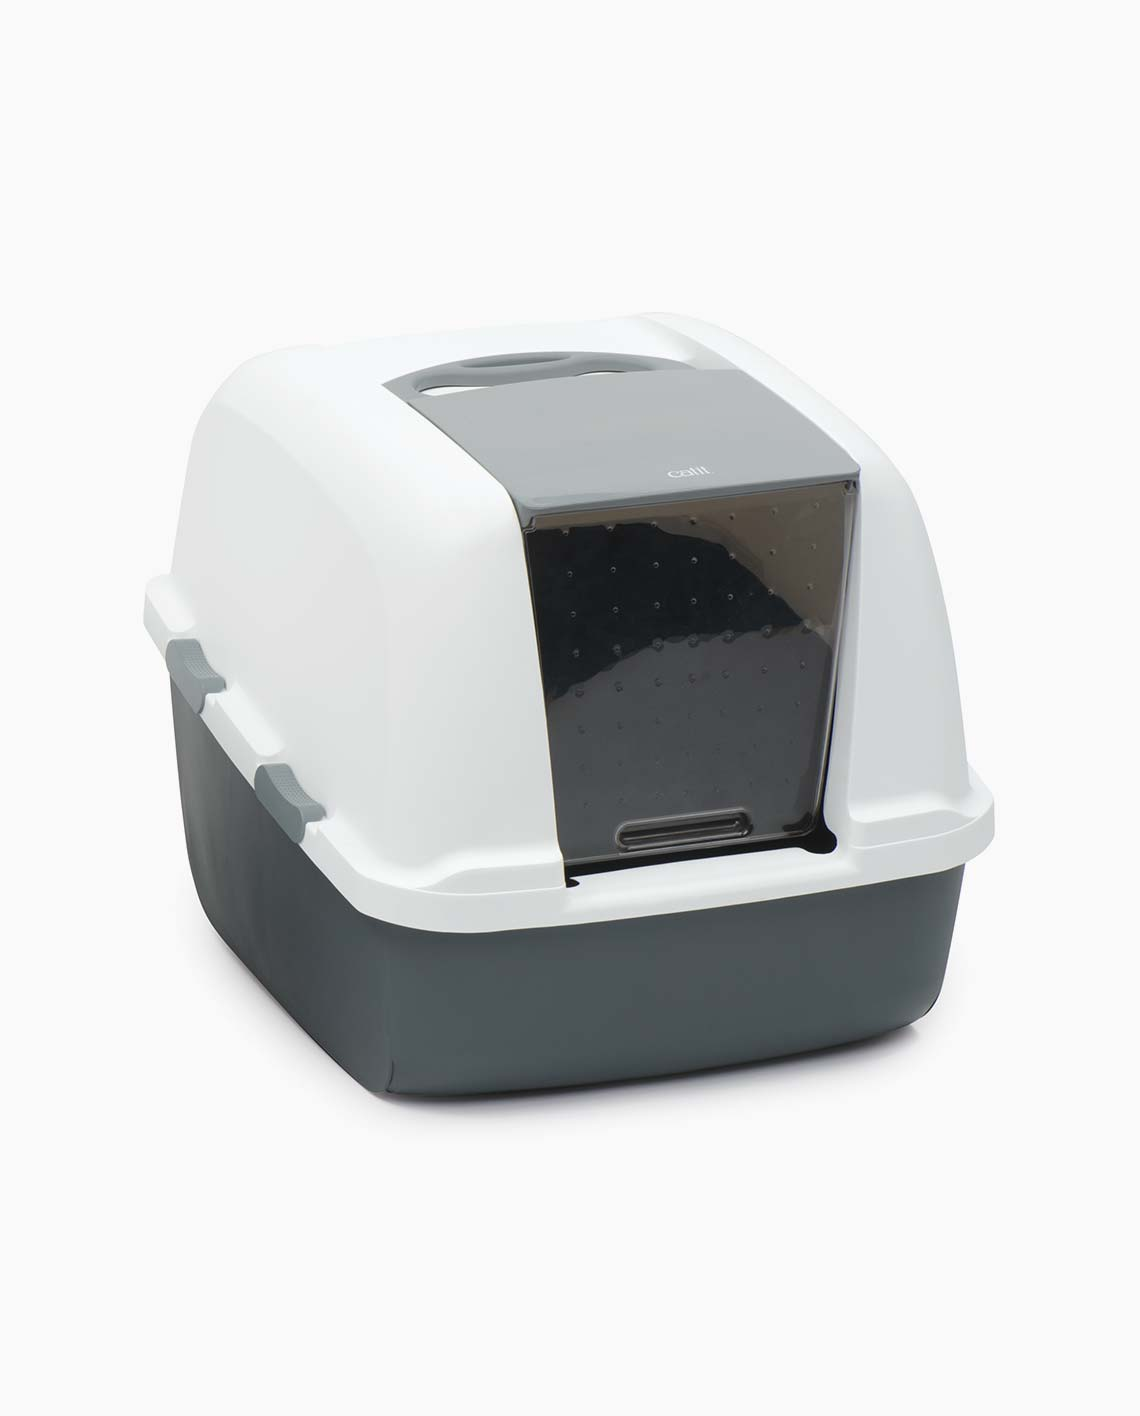 Jumbo litter box from the front